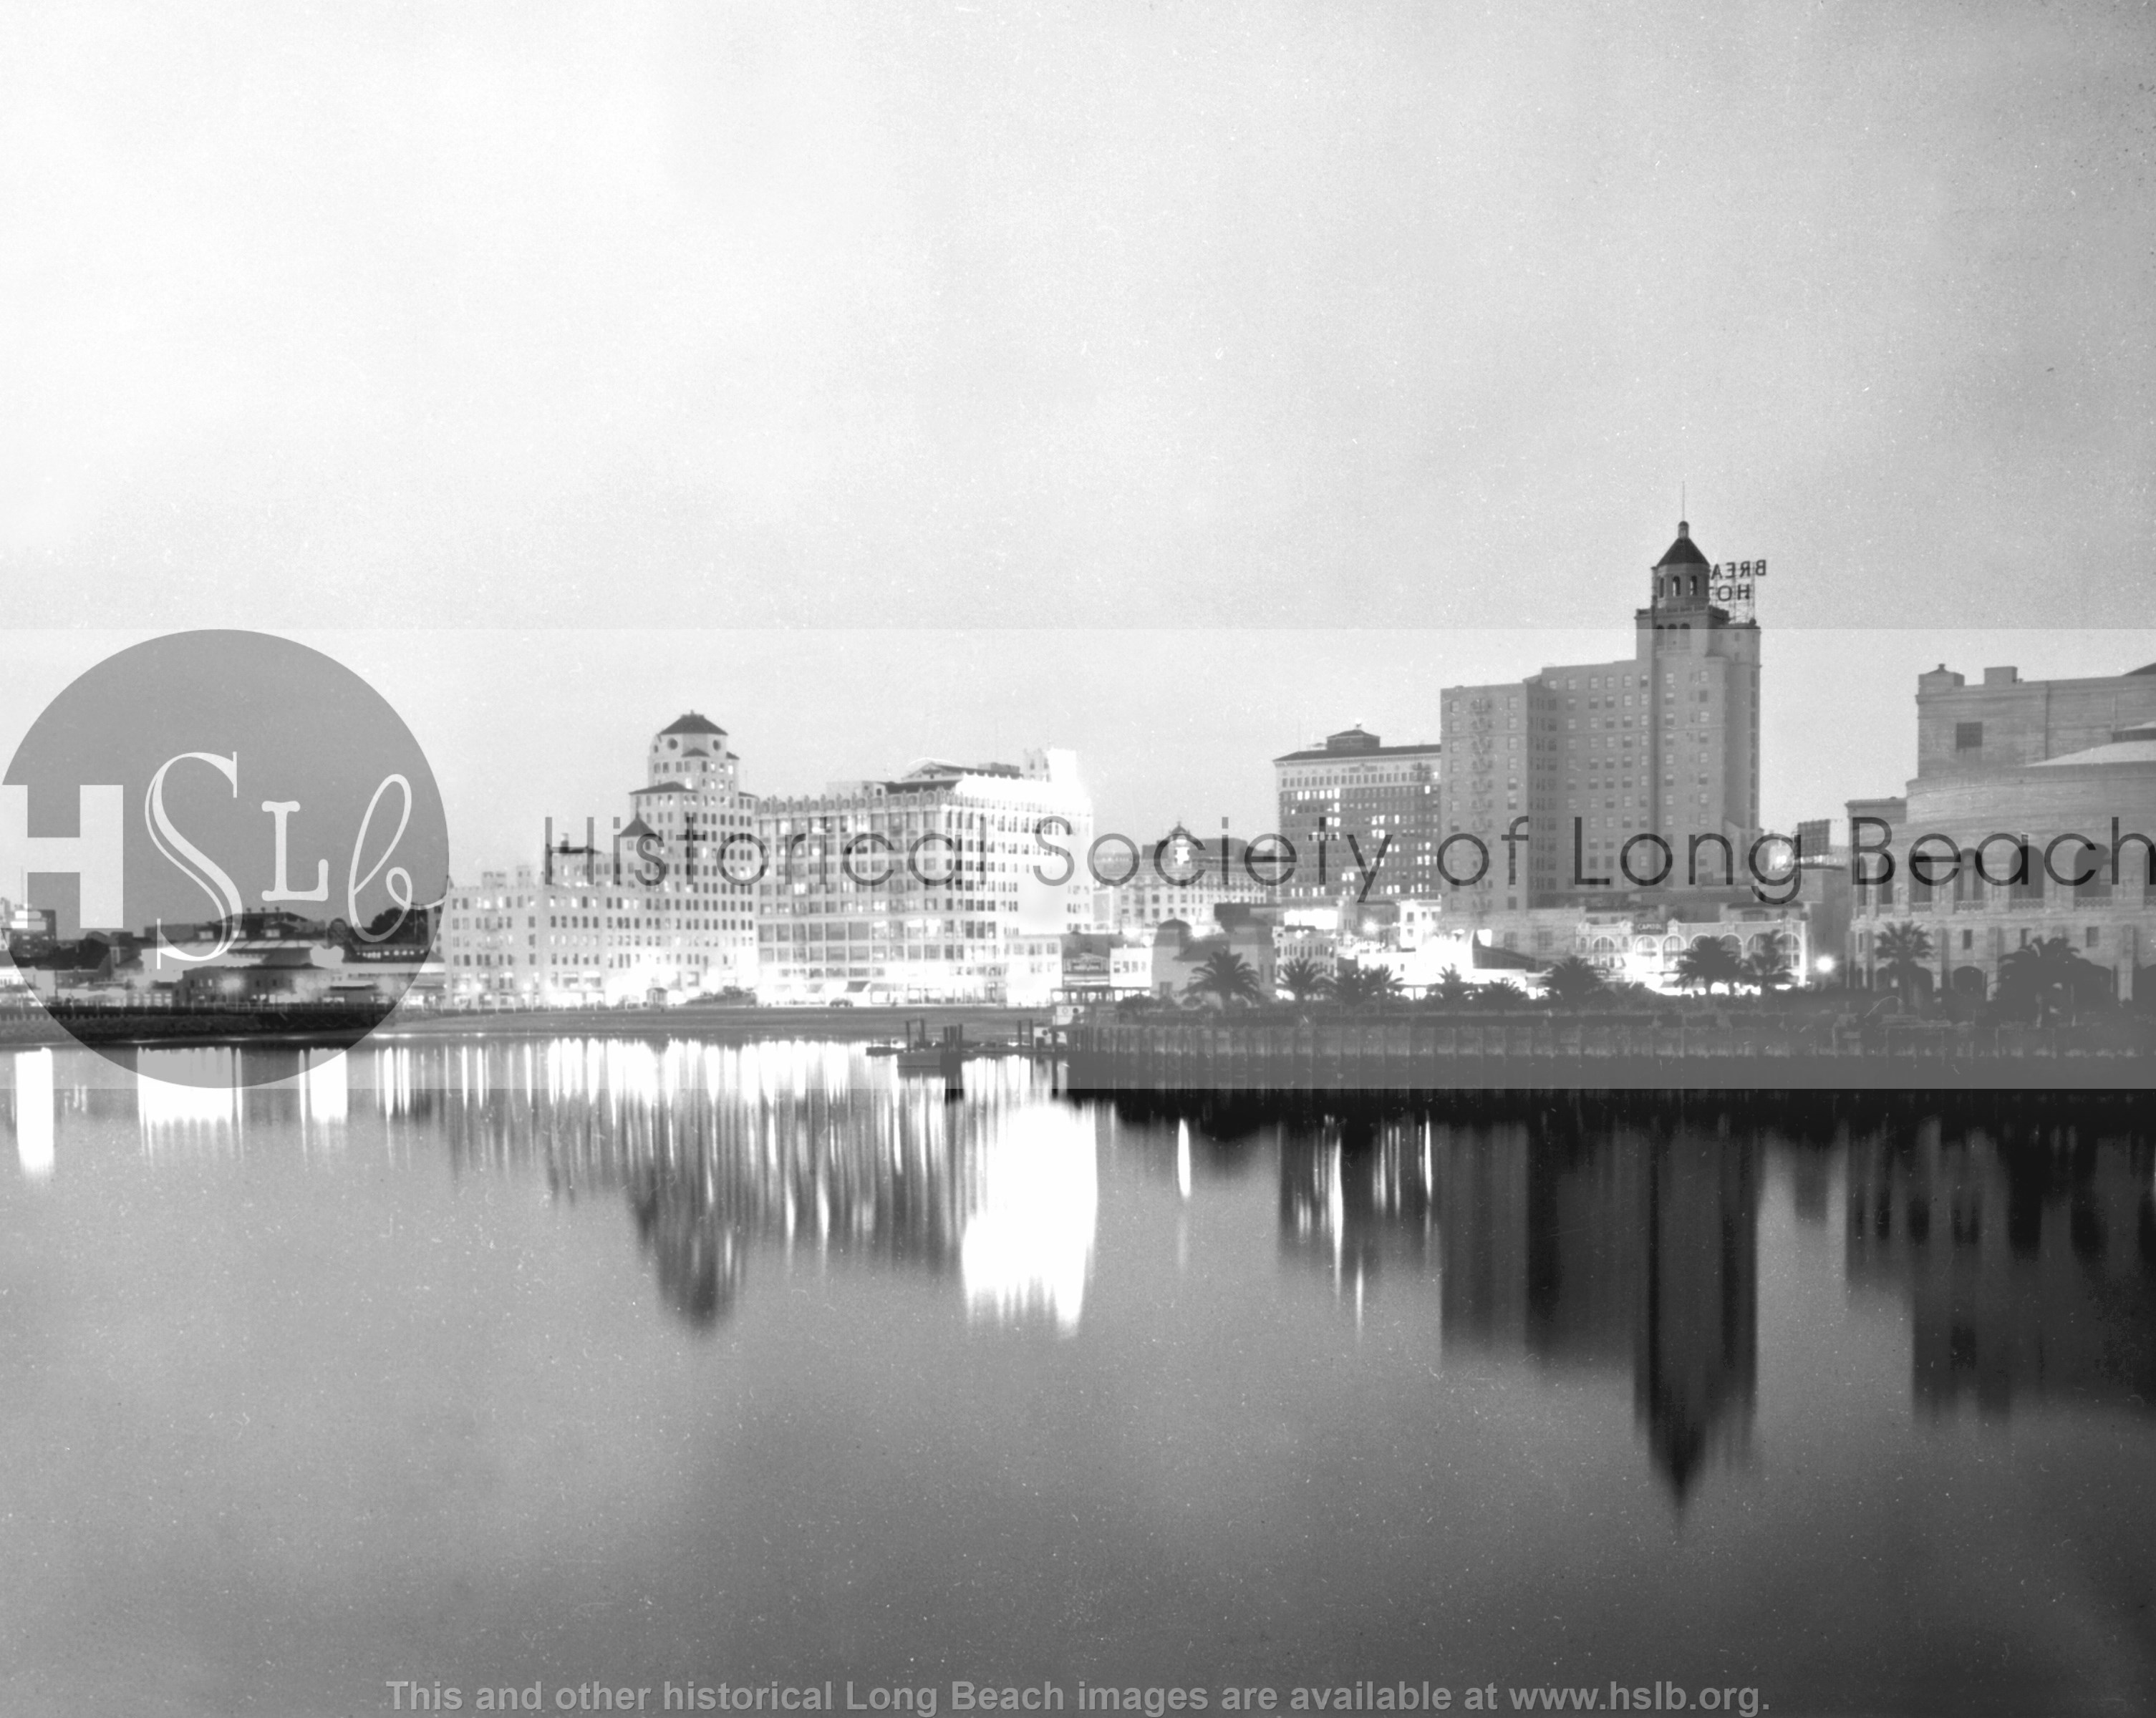 Skyline, 1935 Historical photograph